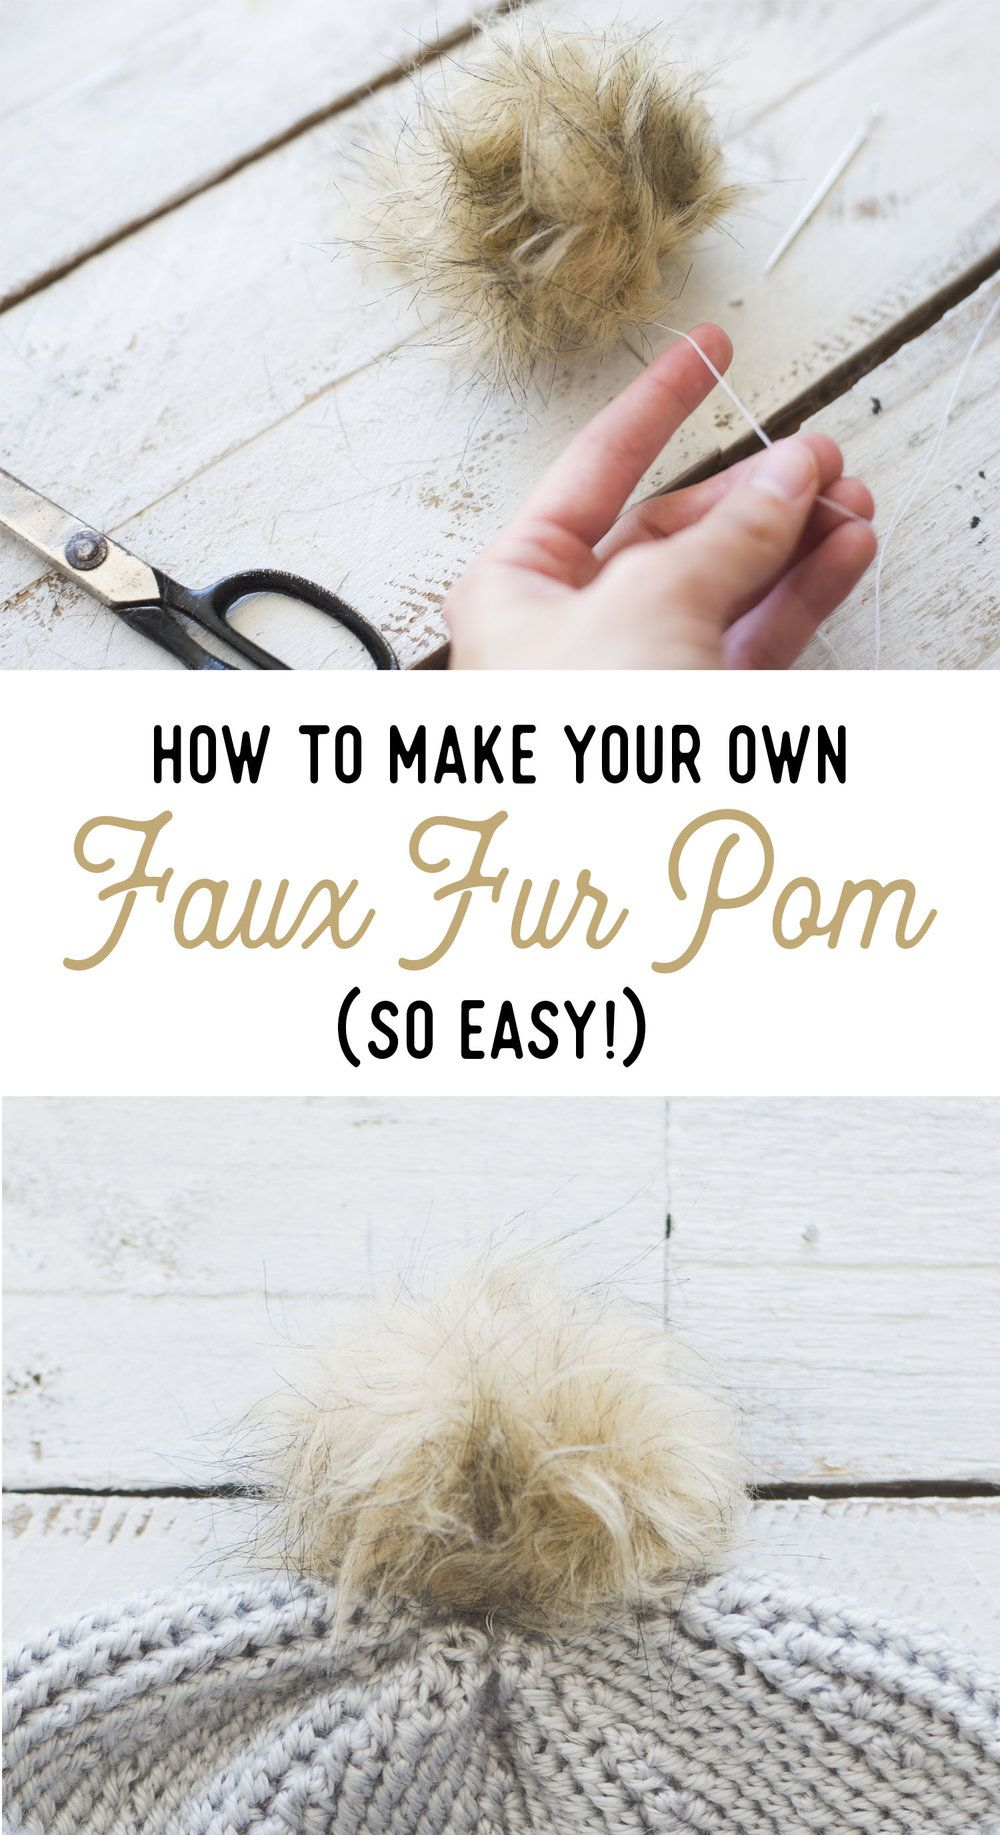 How to Make Your Own Faux Fur Pom (So Easy!) | Hats | Pinterest ...